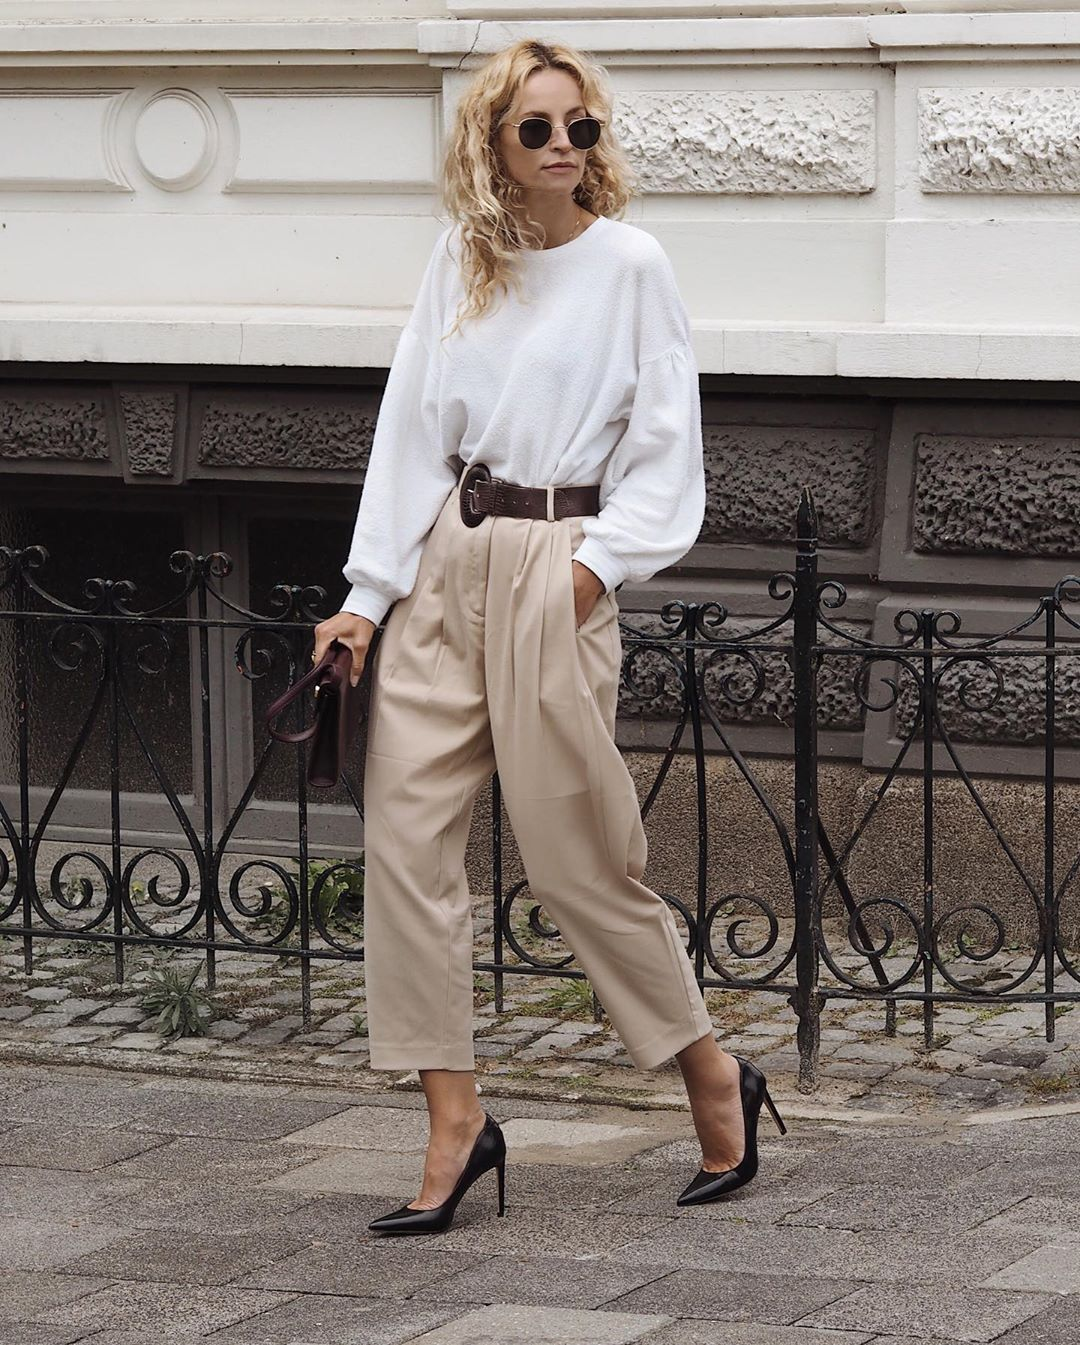 Street Style: Get The Look This Autumn/ Winter